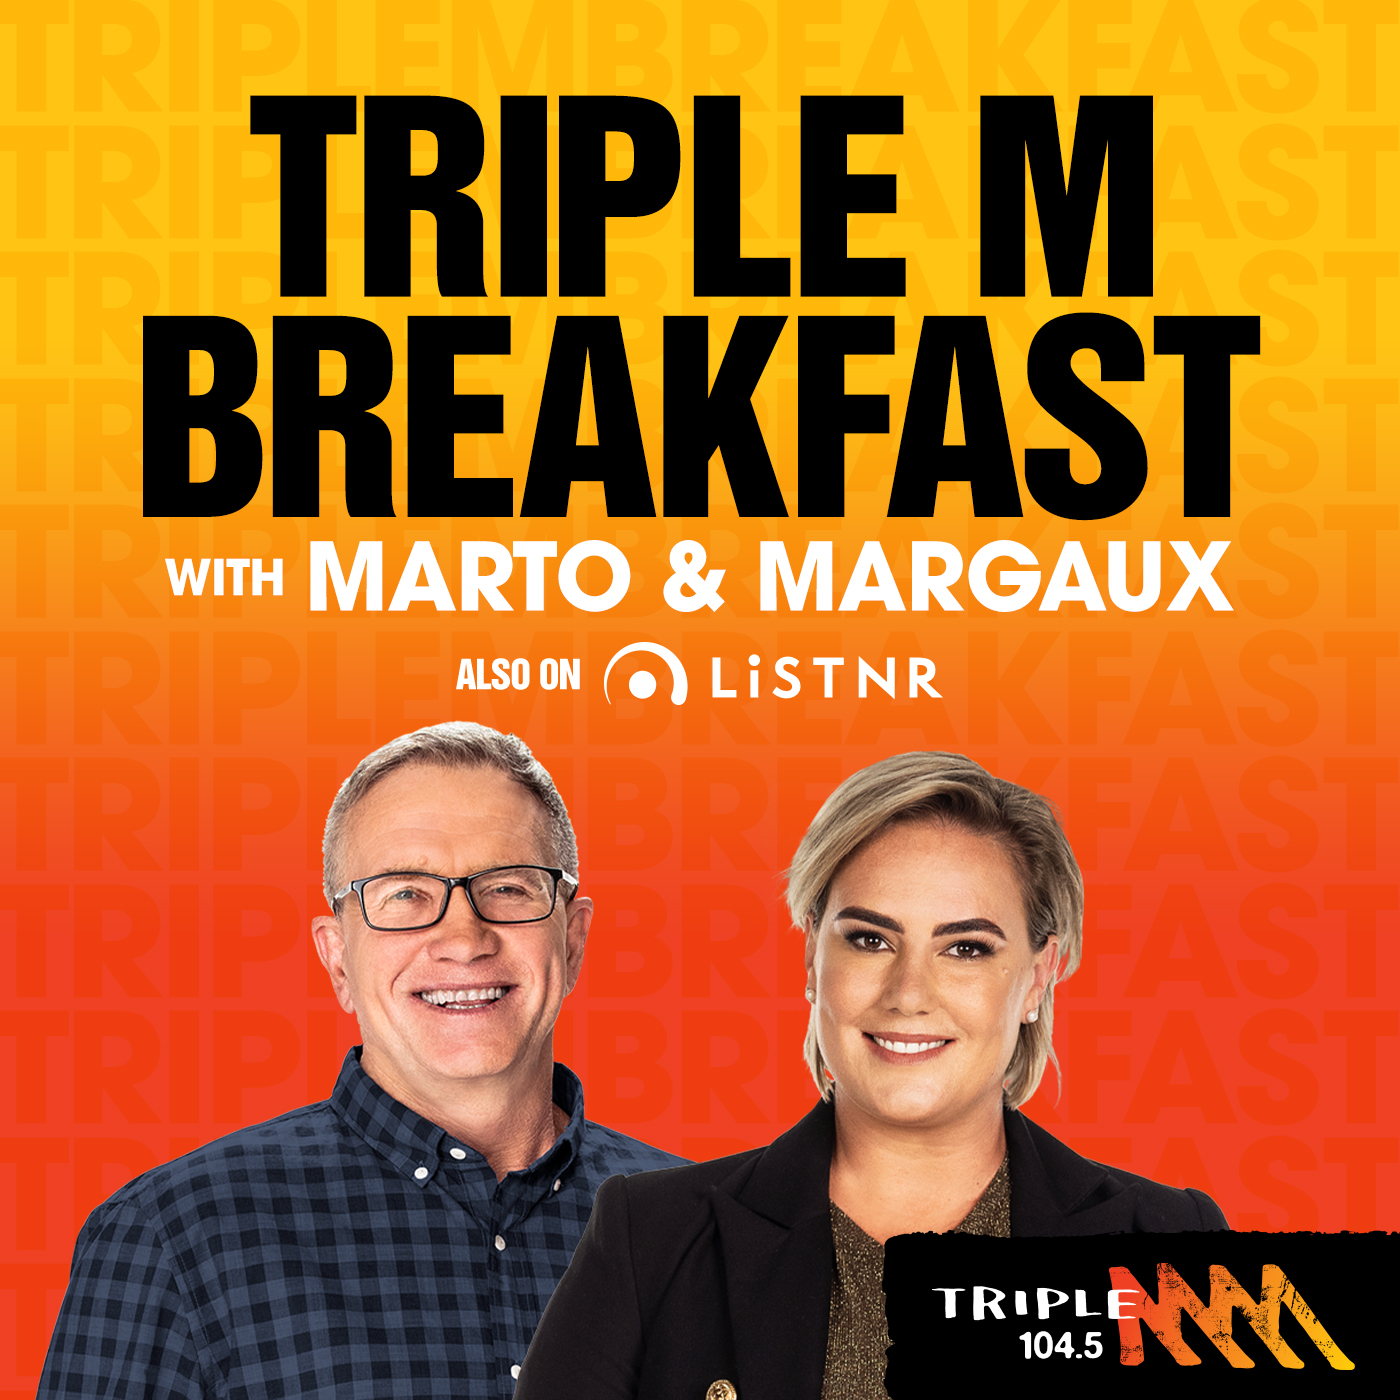 The Big Breakfast Catch Up - 104.5 Triple M Brisbane - Greg Martin, Robin Bailey, Lawrence Mooney